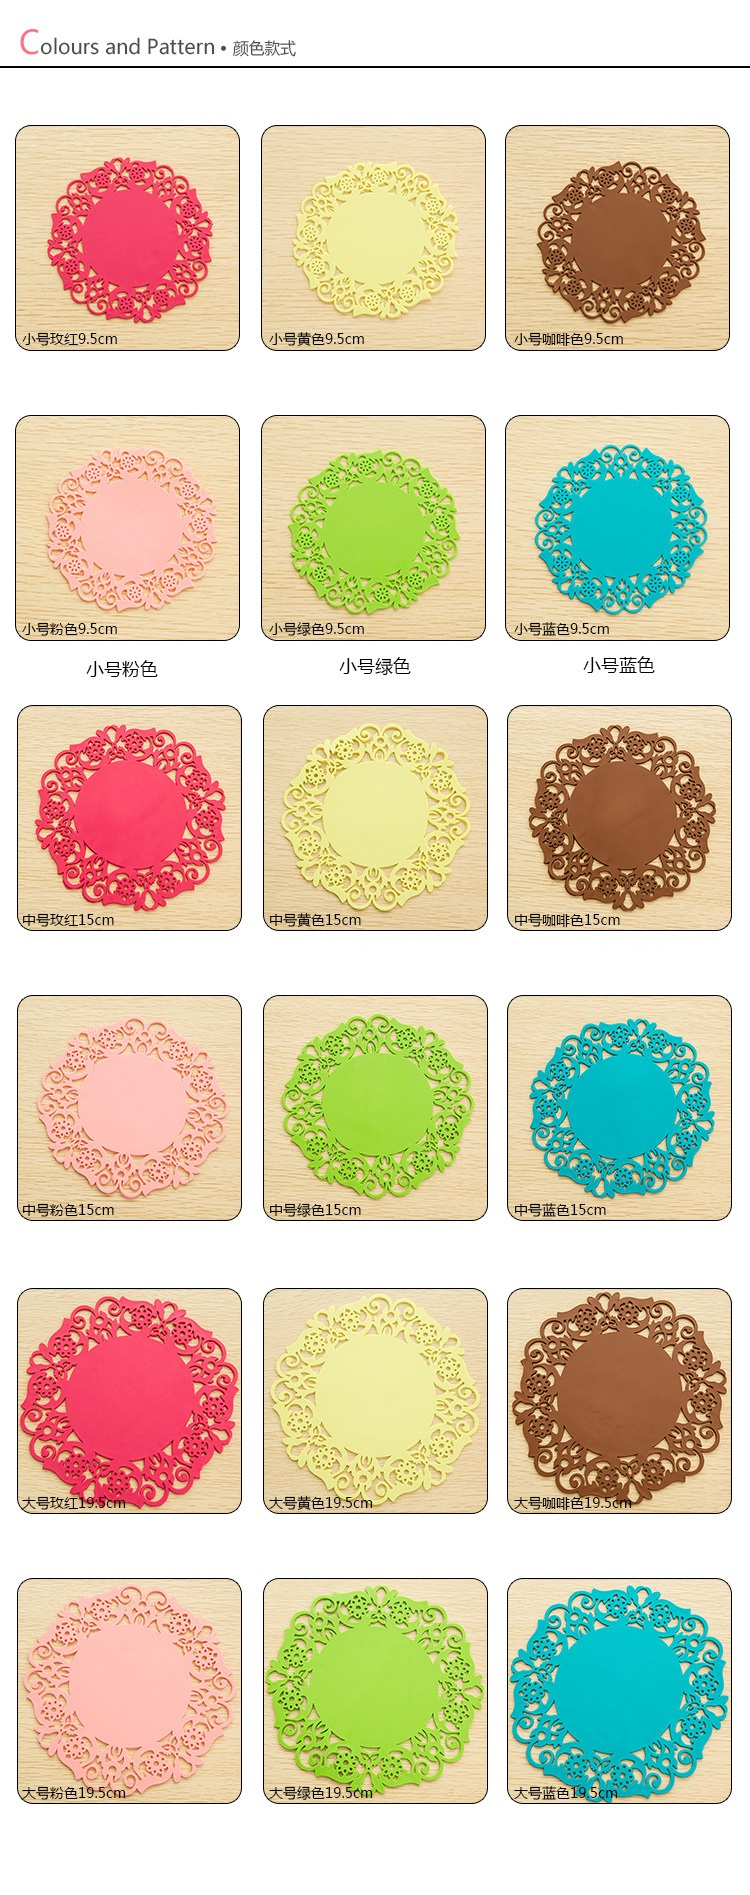 Custom made Round colorful anti-slip Silicone coasters for drinks